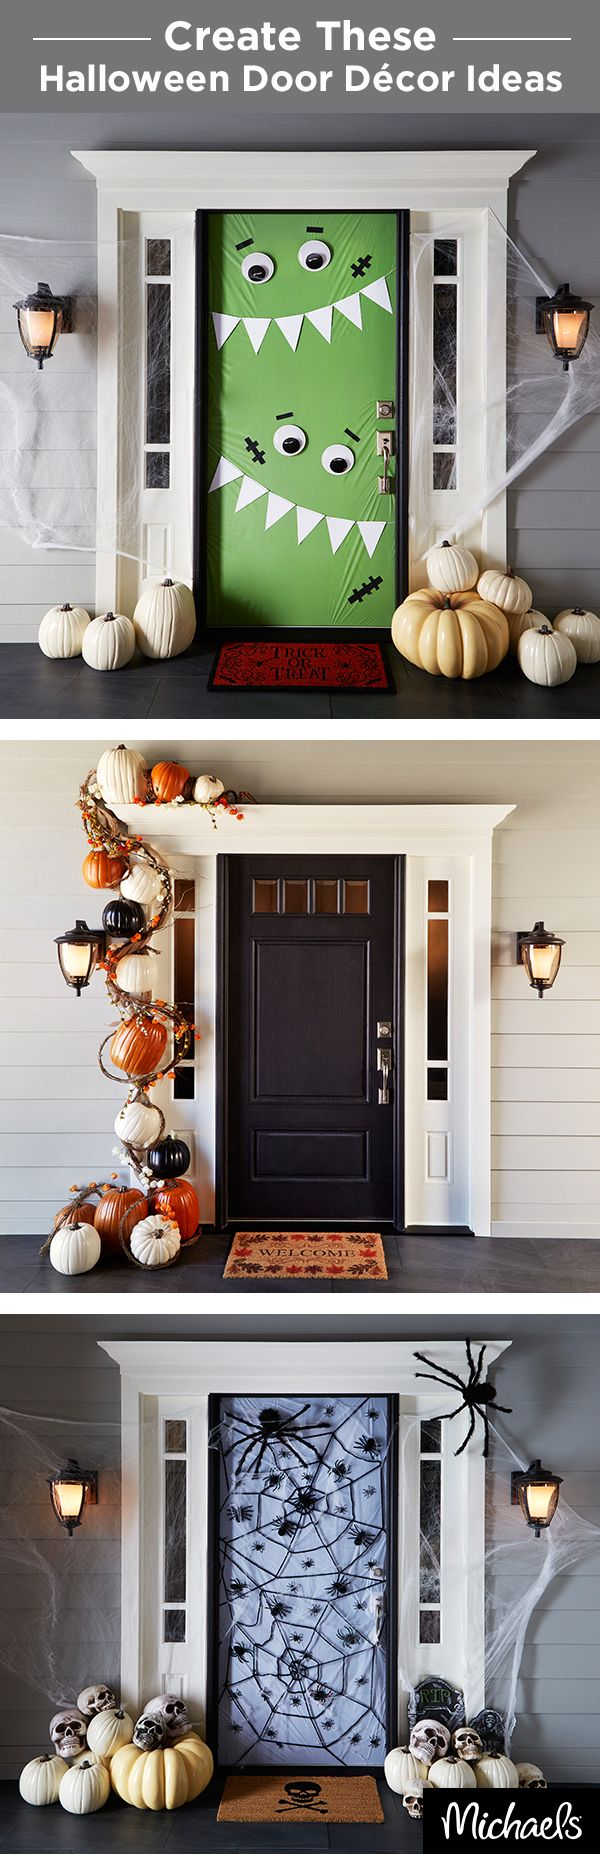 Cute halloween door decorations - Find This Pin And More On Halloween Halloween Decorations